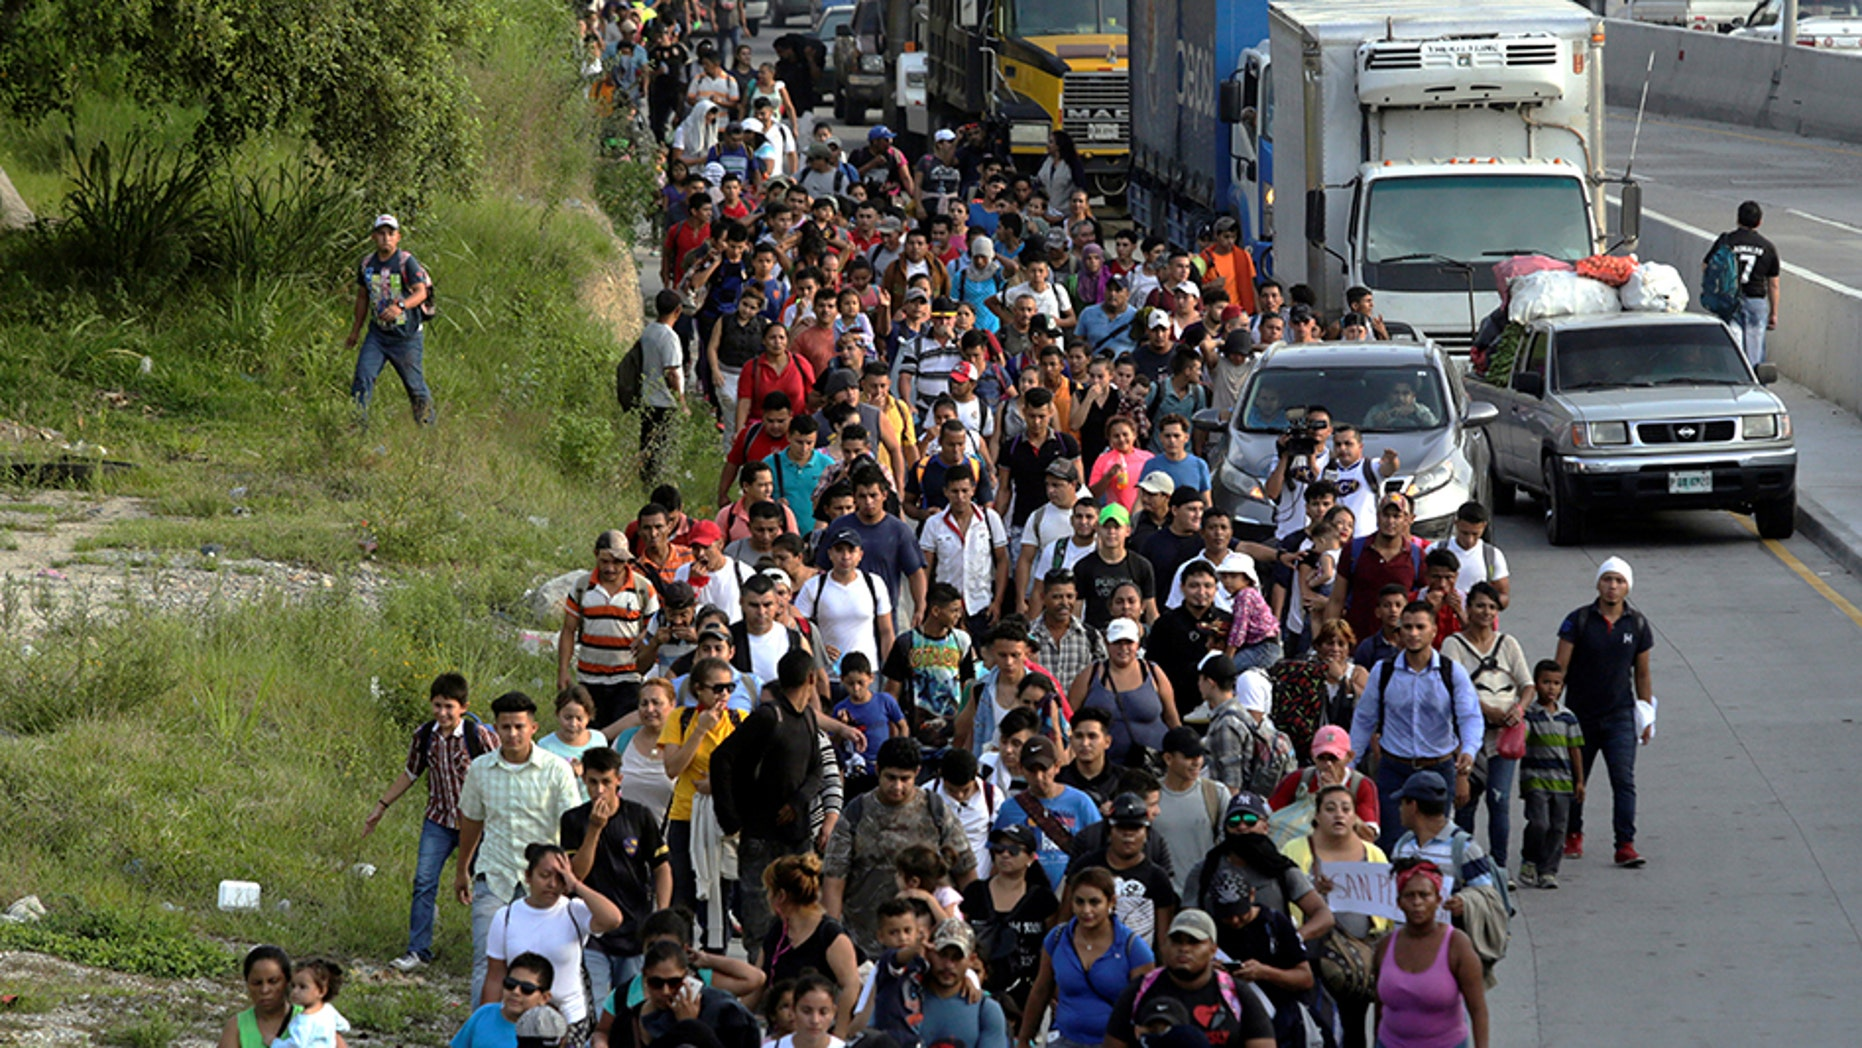 Hondurans fleeing poverty and violence are seen here in San Pedro Sula. They're headed toward the U.S